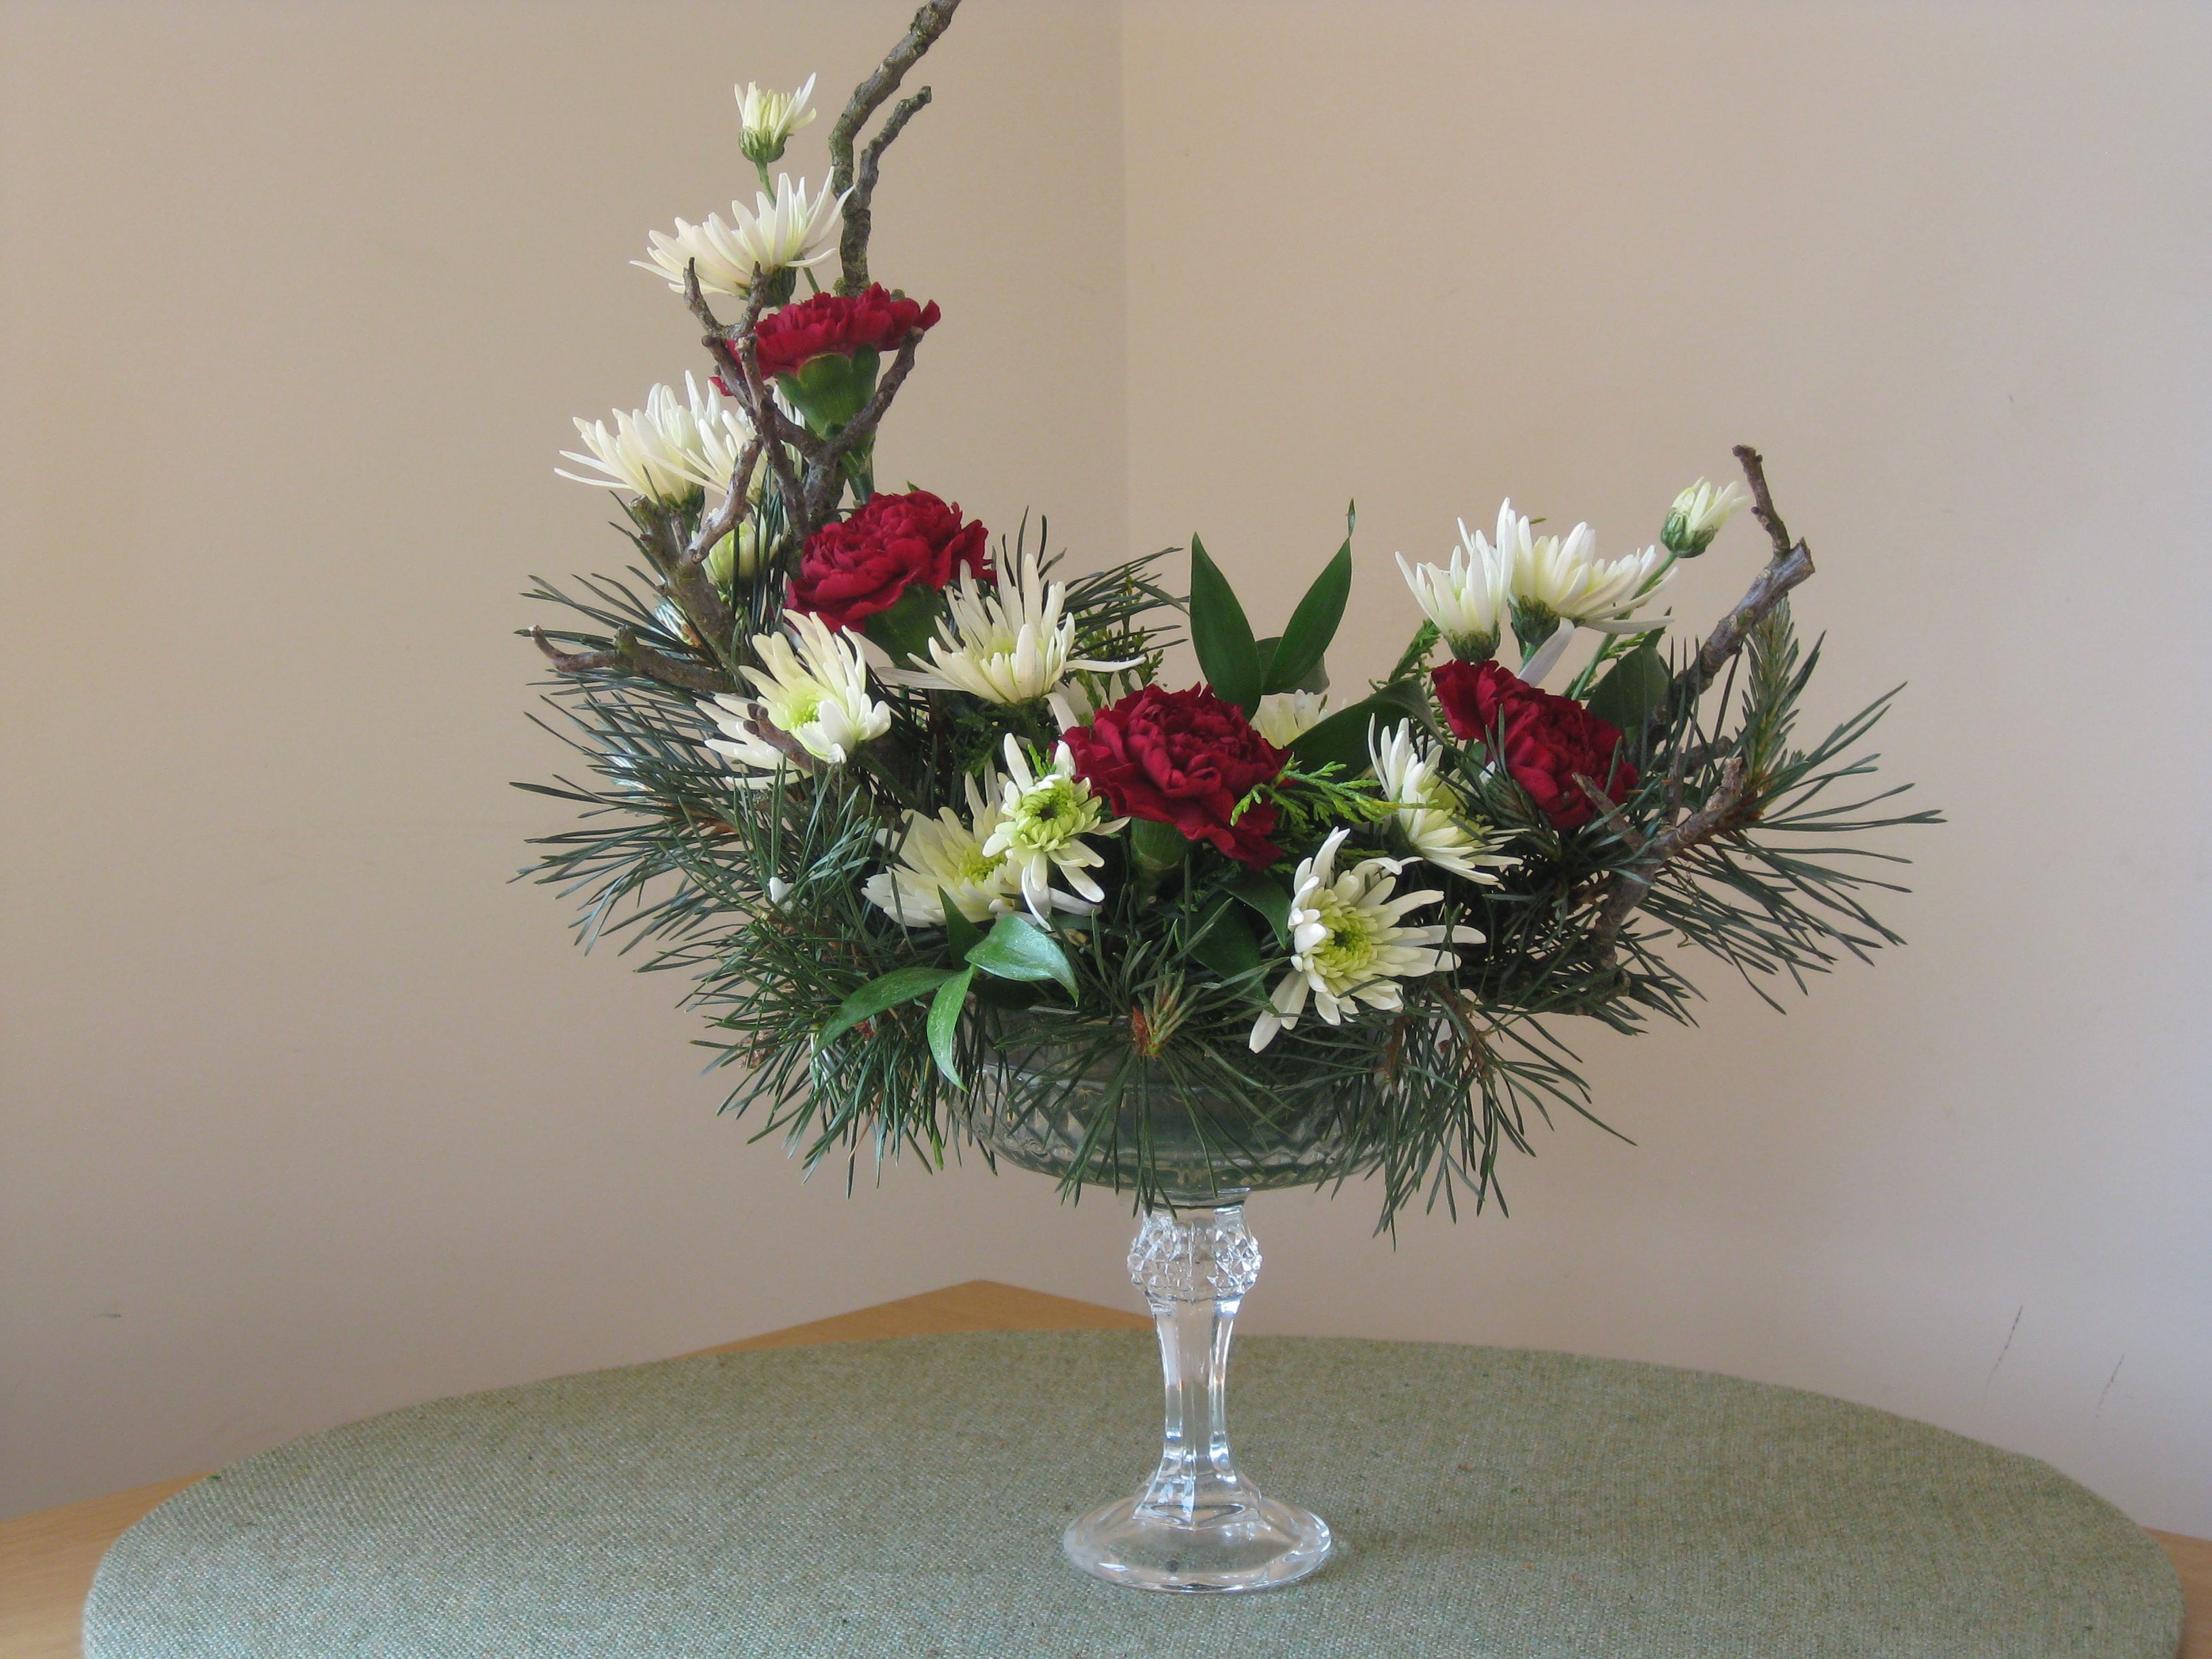 Designer Floral Arrangements | TRY MAKING A PEDESTAL DESIGN IN A ...